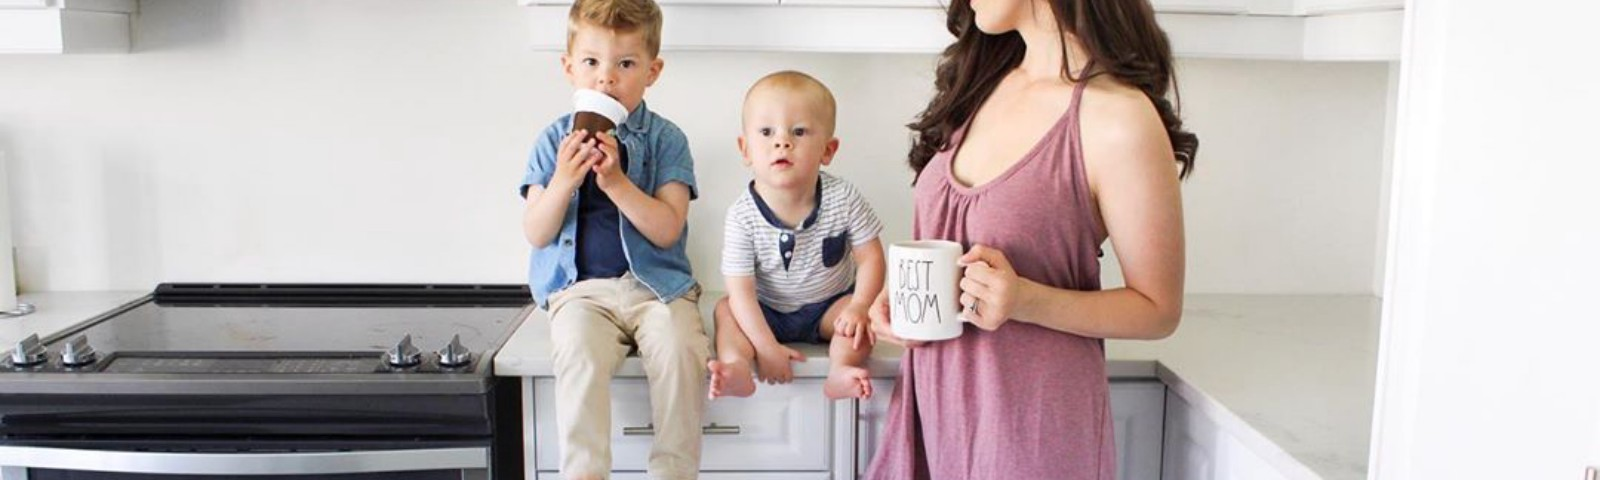 """Mother holding """"Best Mom"""" coffee mug as she stands with two young children in a kitchen."""